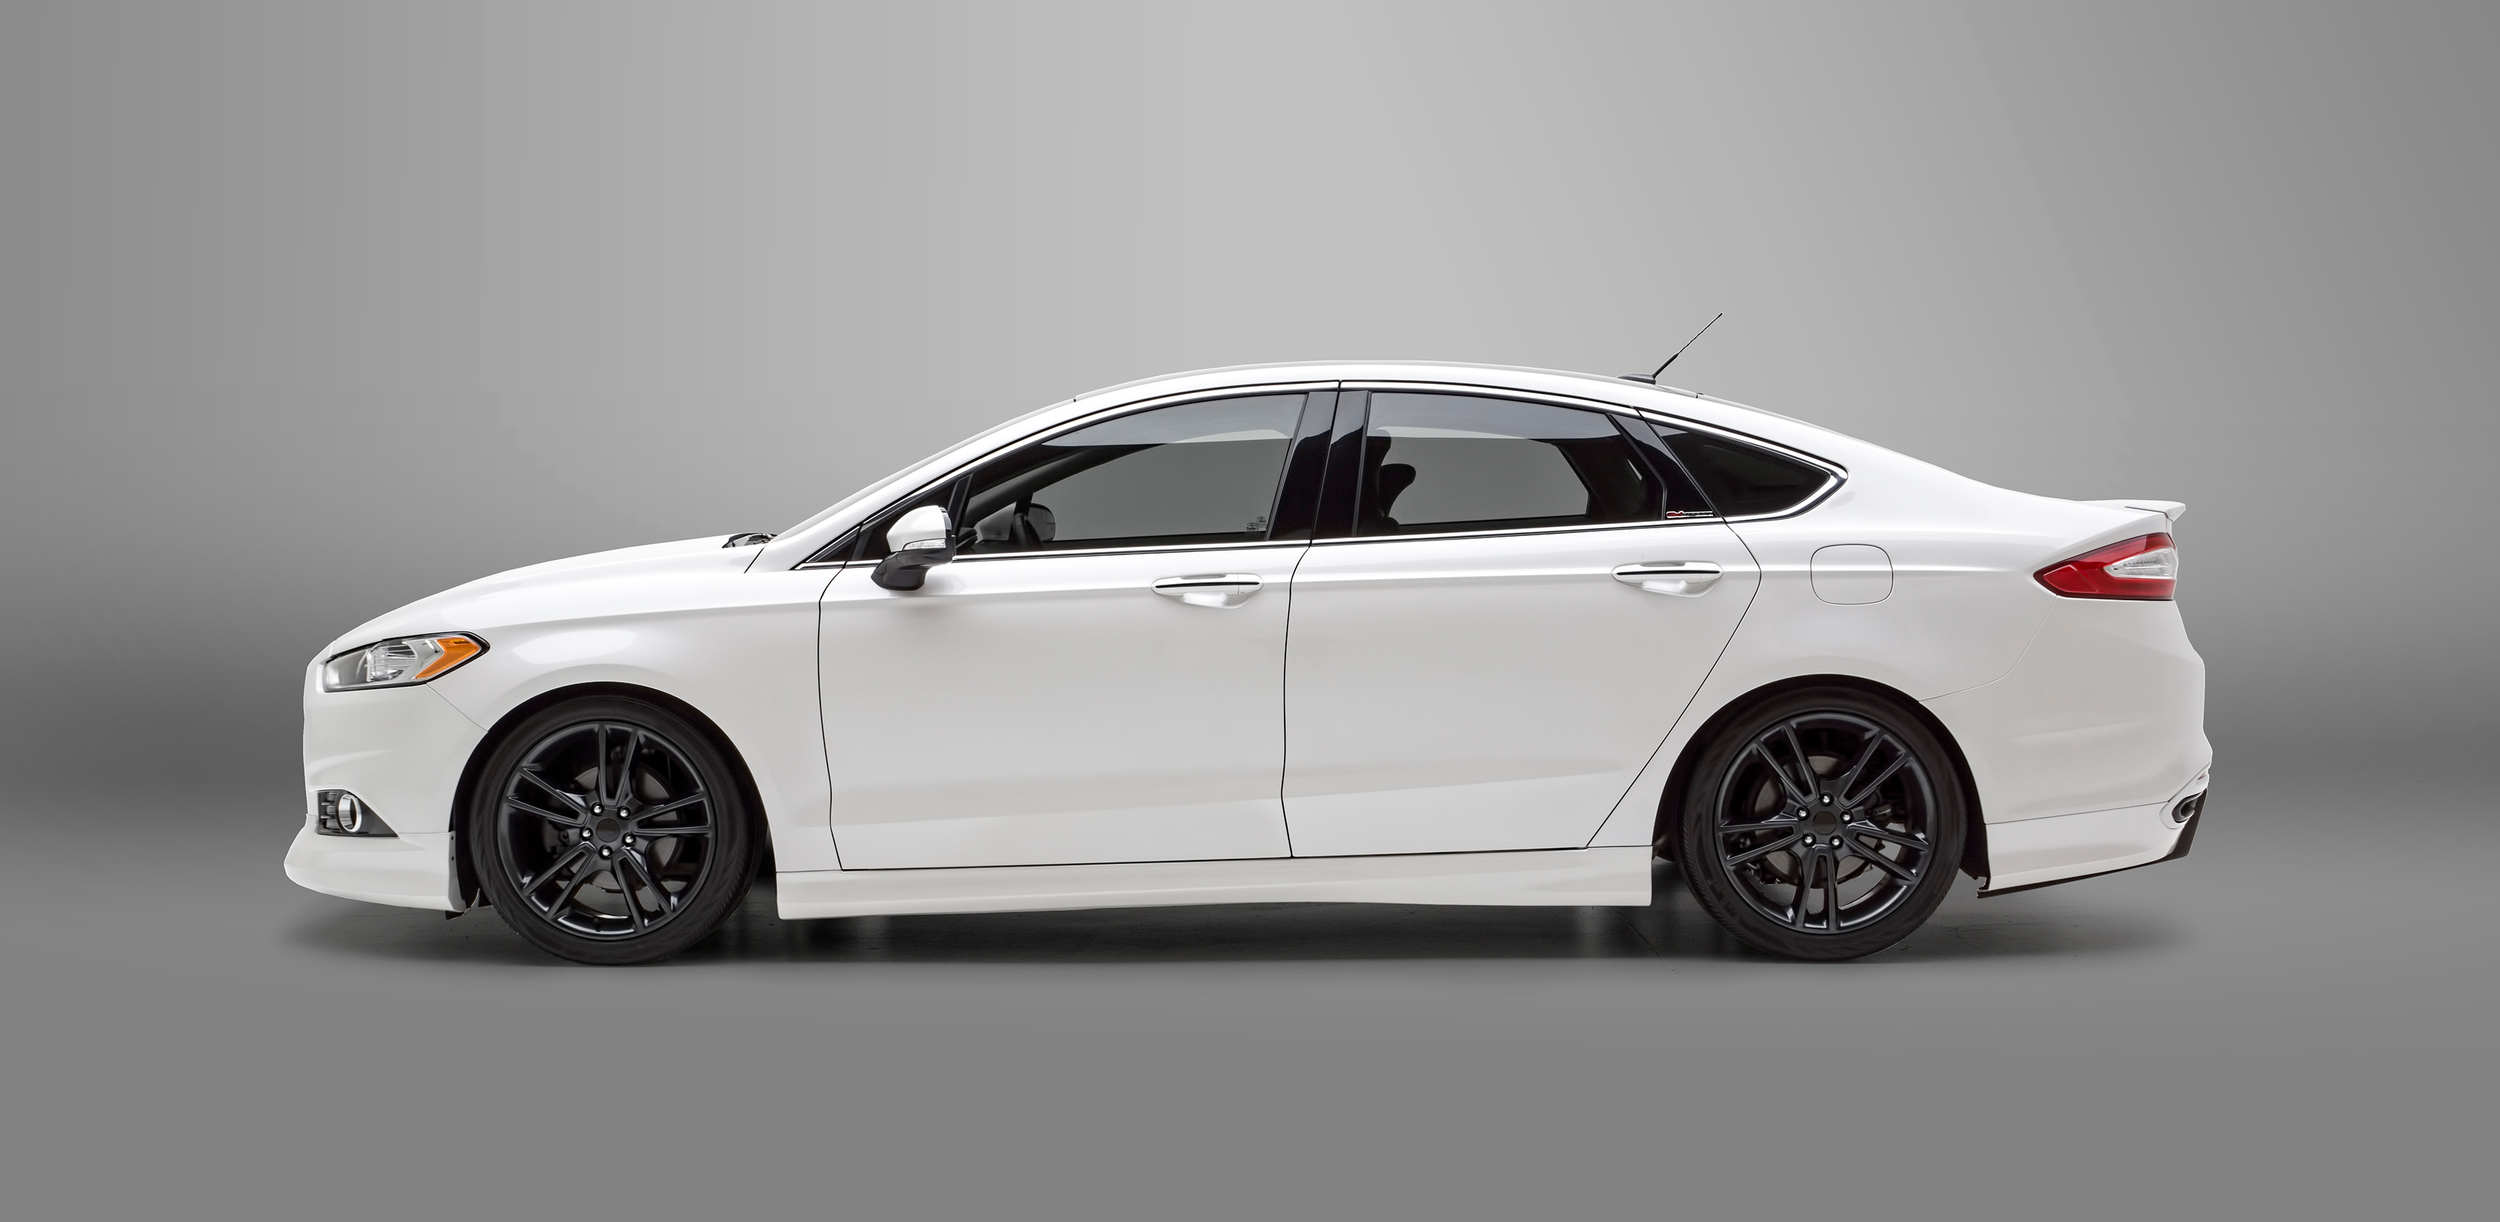 A factory backed body kit by 3dcarbon is now available to ford fusion owners who want their car to stand out from the crowd while not being too flashy